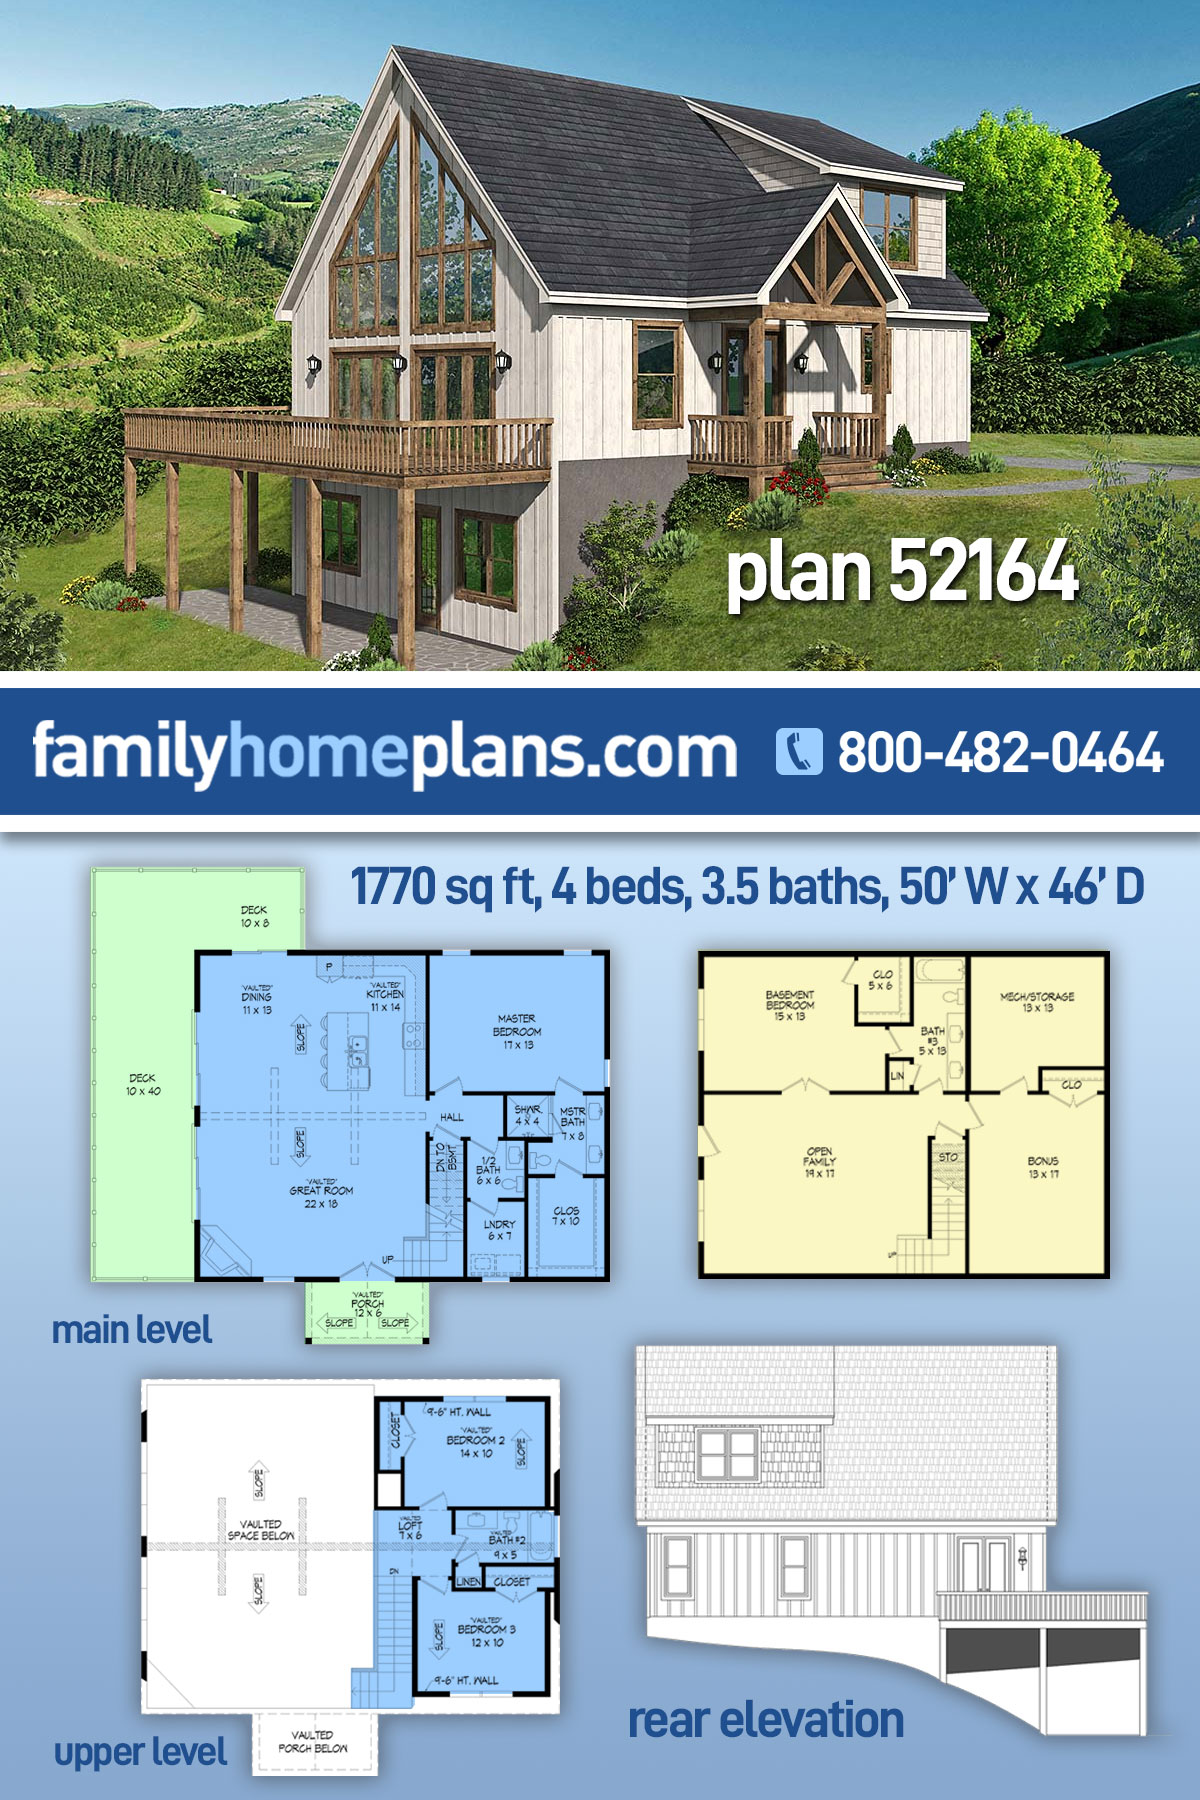 A-Frame, Contemporary House Plan 52164 with 4 Beds, 4 Baths